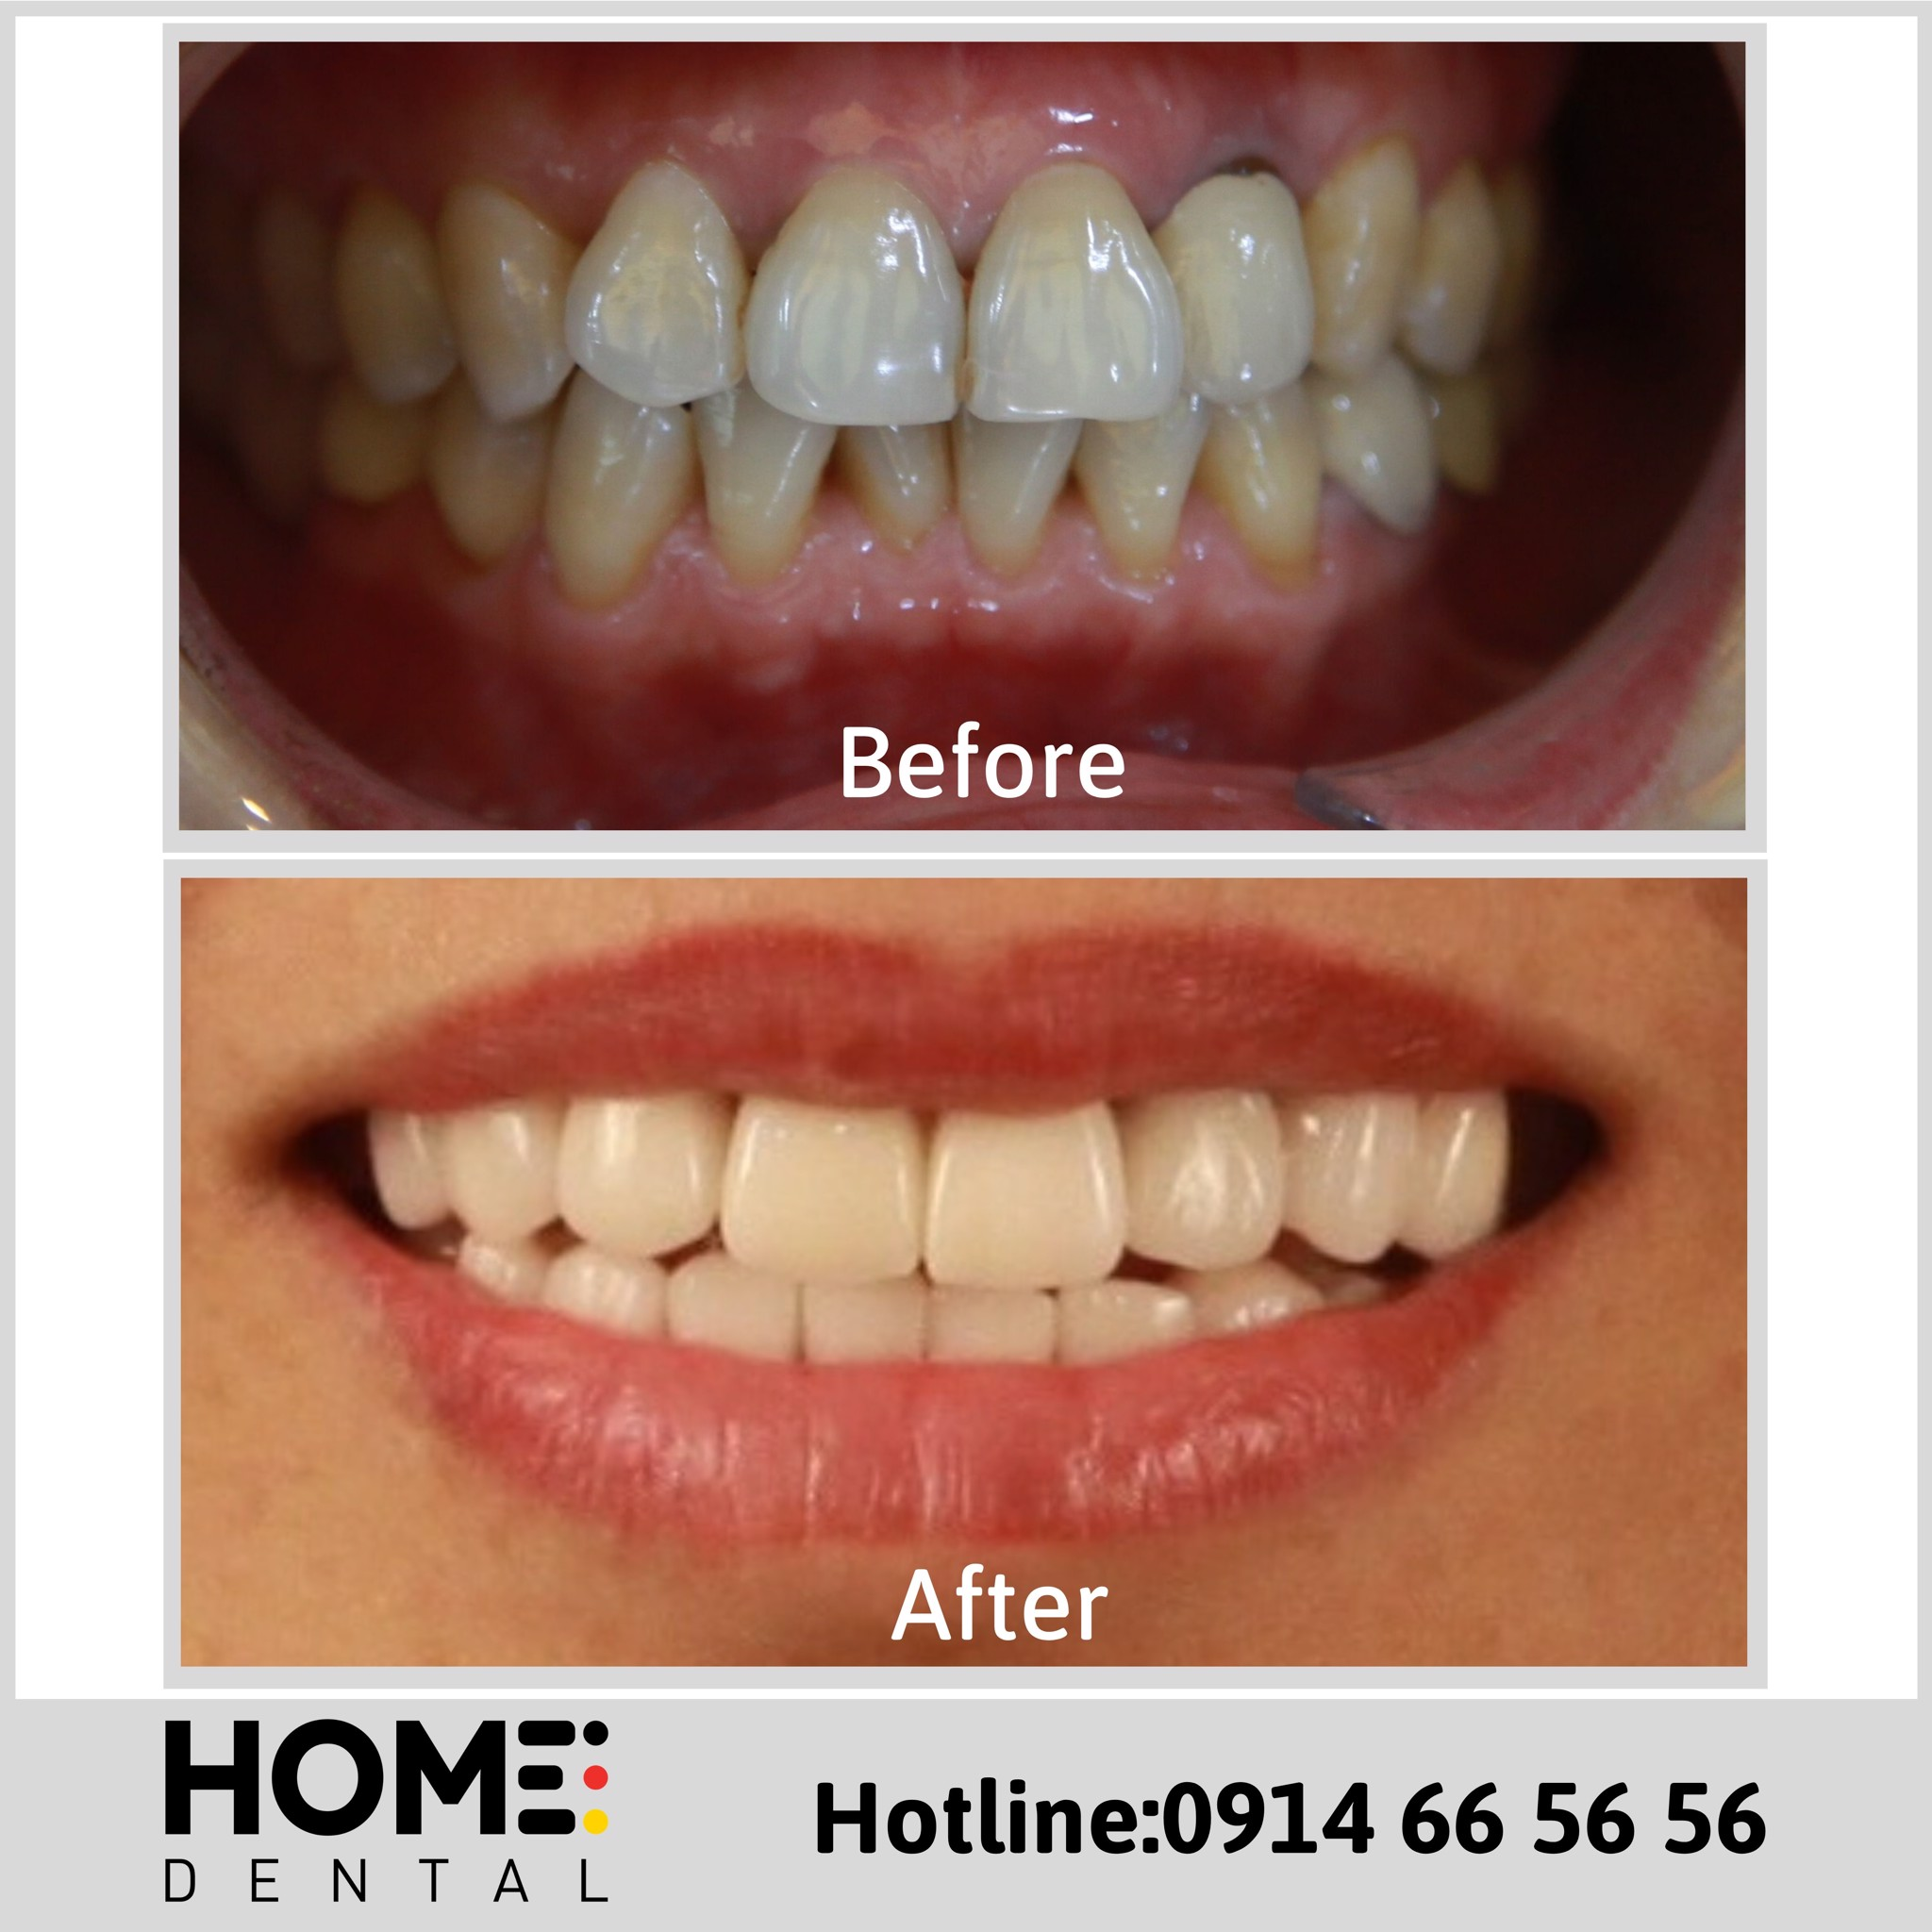 PORCELAIN CROWNS & LAMINATE VENEERS 2